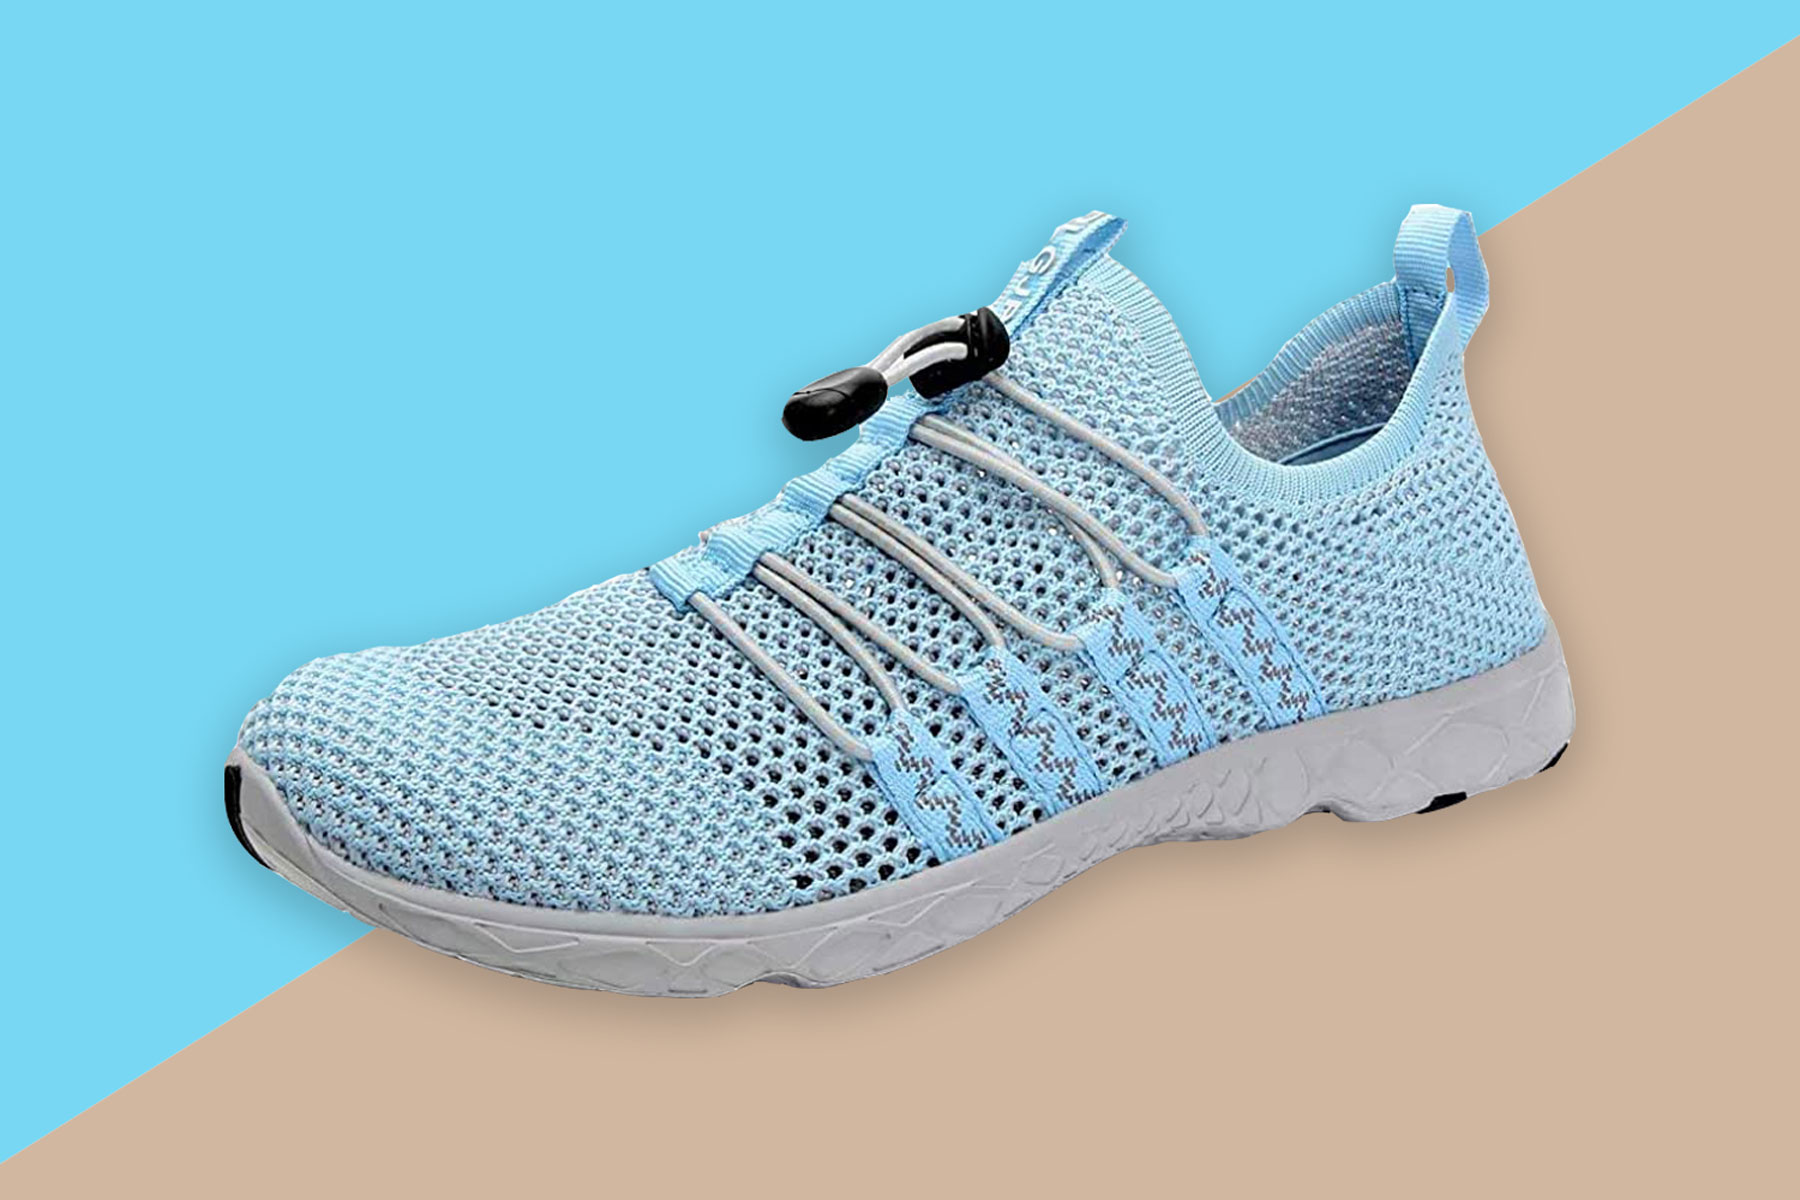 Blue mesh water shoes